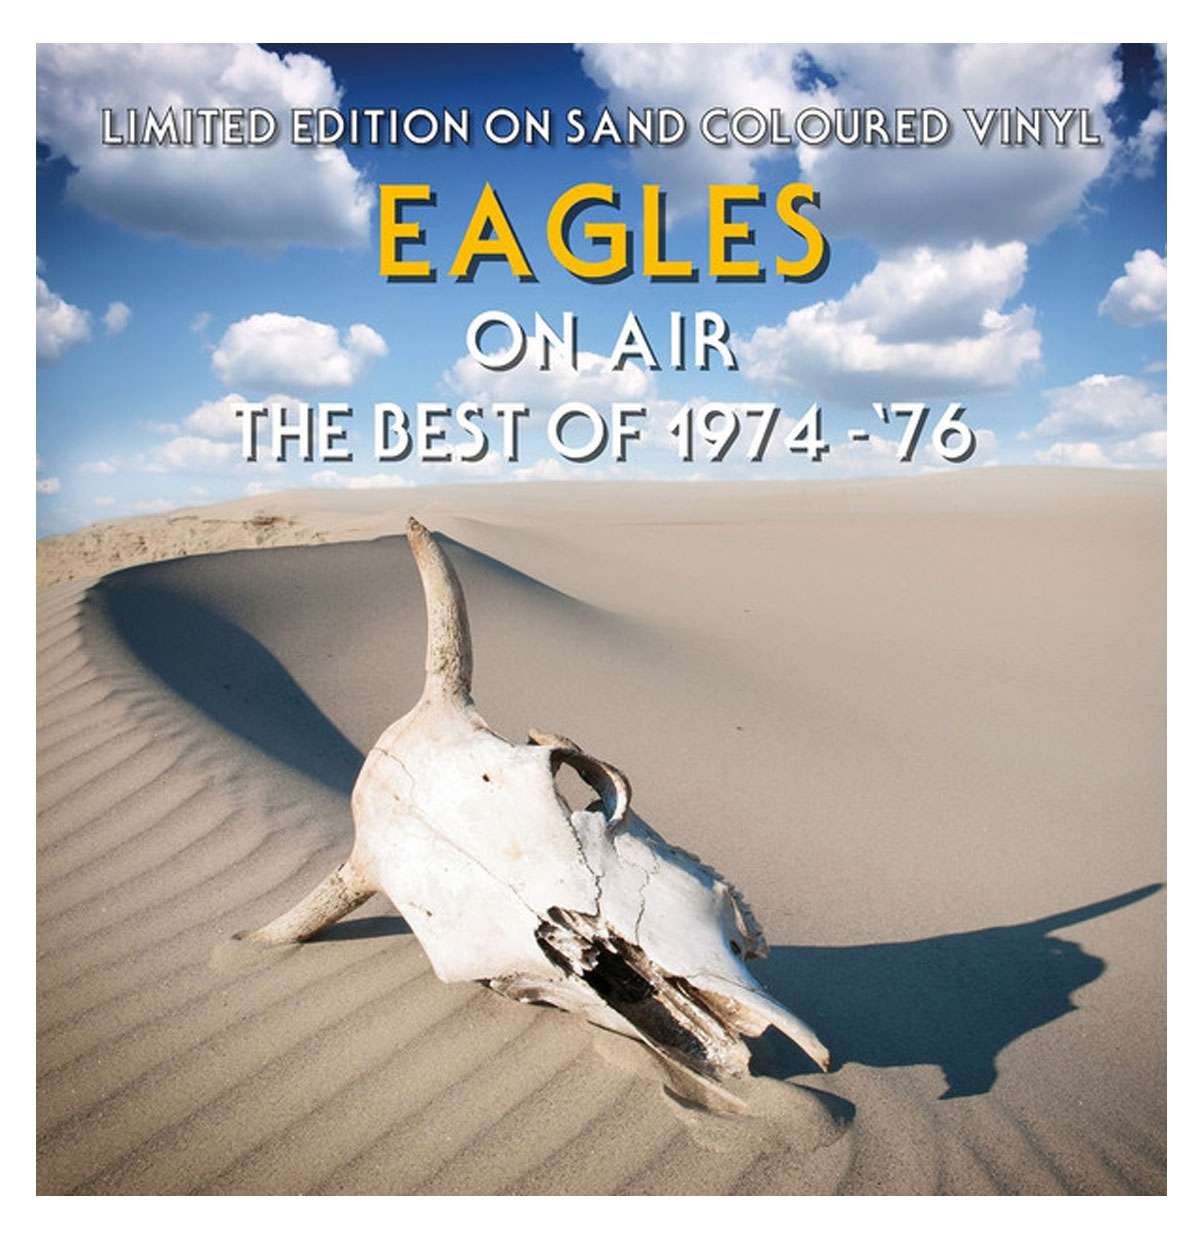 The Eagles - On Air The Best Of 1974-'76 LP - LIMITED EDITION